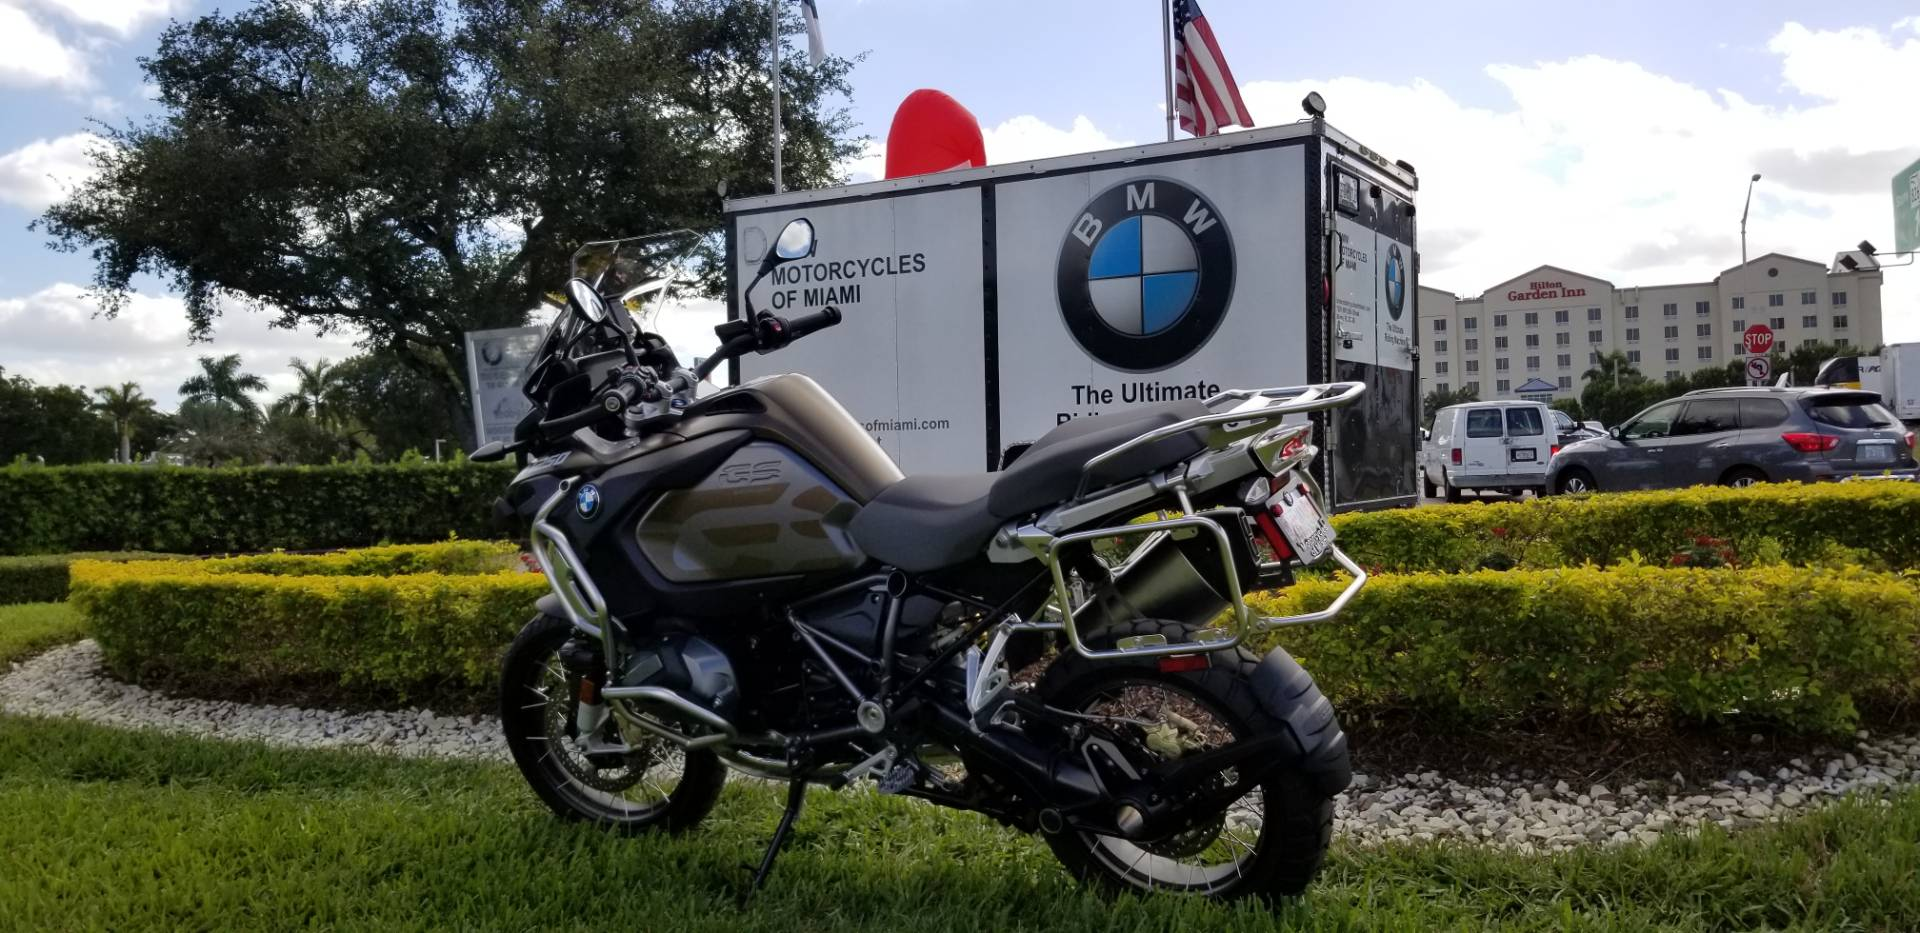 New 2019 BMW R 1250 GSA for sale, New BMW for sale R 1250GSA, New BMW Motorcycle R1250GSA for sale, new BMW 1250GS Adventure, R1250GS Adventure, Adventure. BMW Motorcycles of Miami, Motorcycles of Miami, Motorcycles Miami, New Motorcycles, Used Motorcycles, pre-owned. #BMWMotorcyclesOfMiami #Motorcy